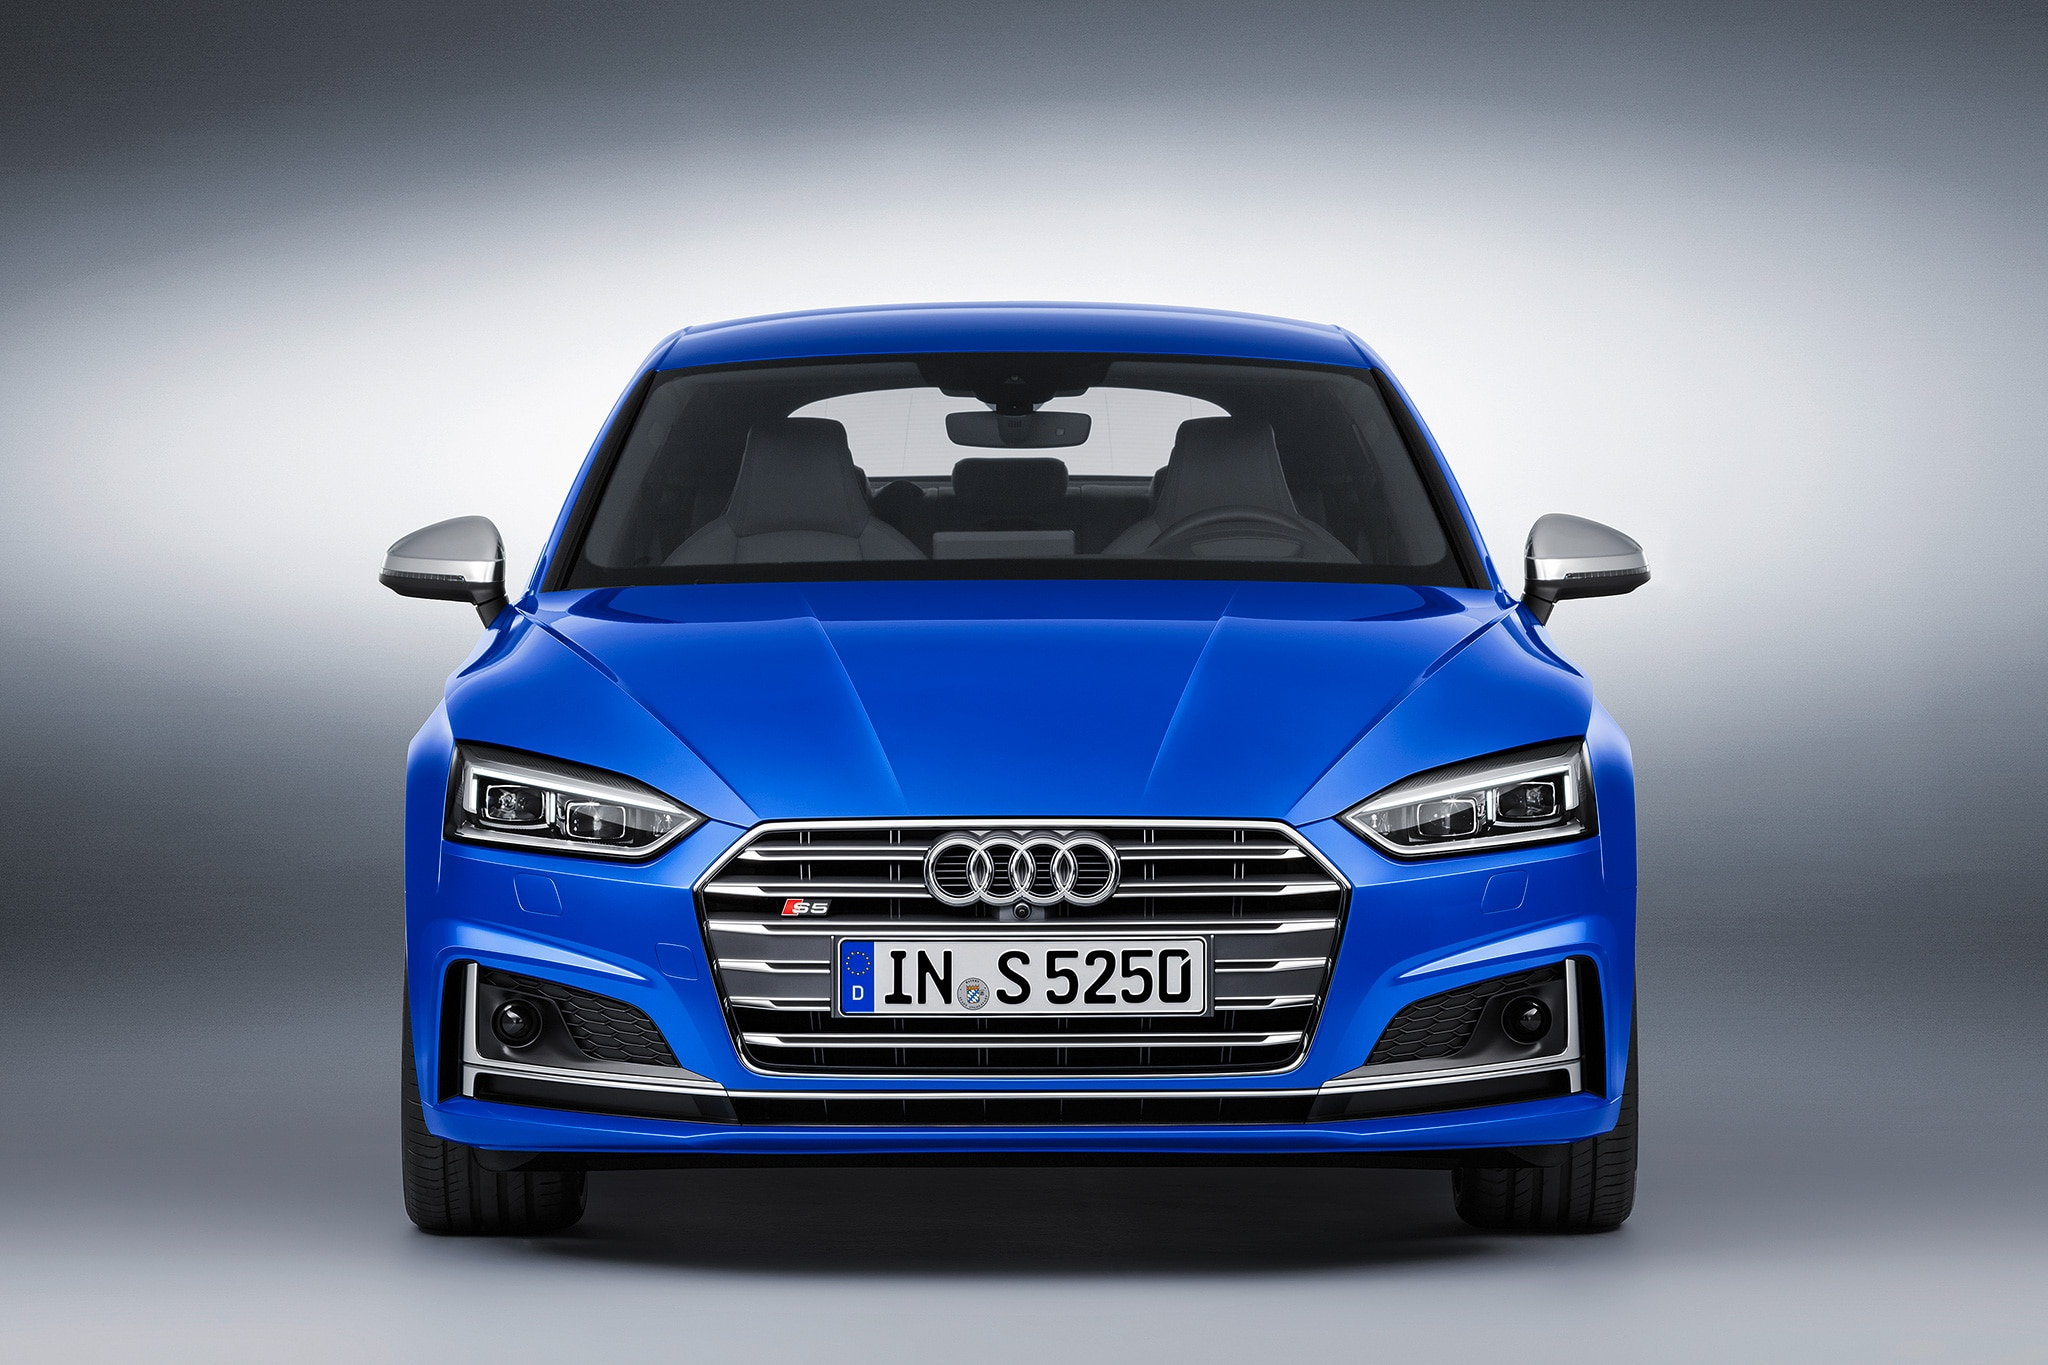 Audi s5 sportback 2017 review by car magazine - 2018 Audi S5 Sportback European Spec Rear Three Quarter In Europe